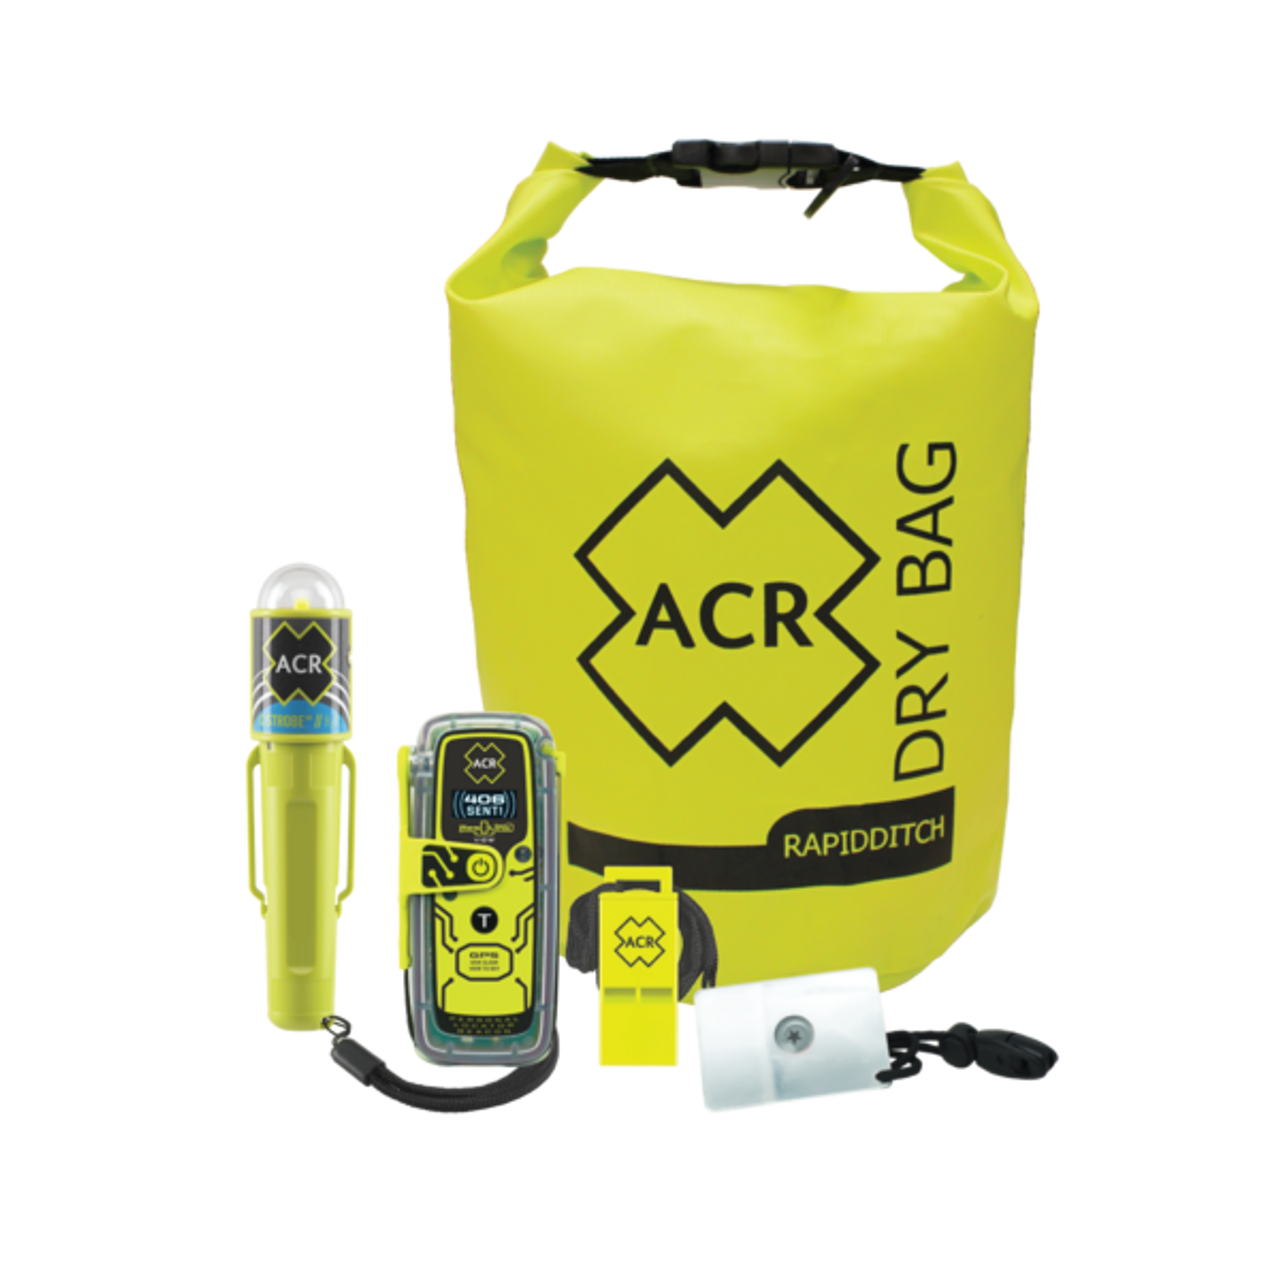 ACR RESQLINK 425 VIEW NZ CODED 406 MHZ GPS BUOYANT PLB-425 with DIGITAL DISPLAY SURVIVAL KIT